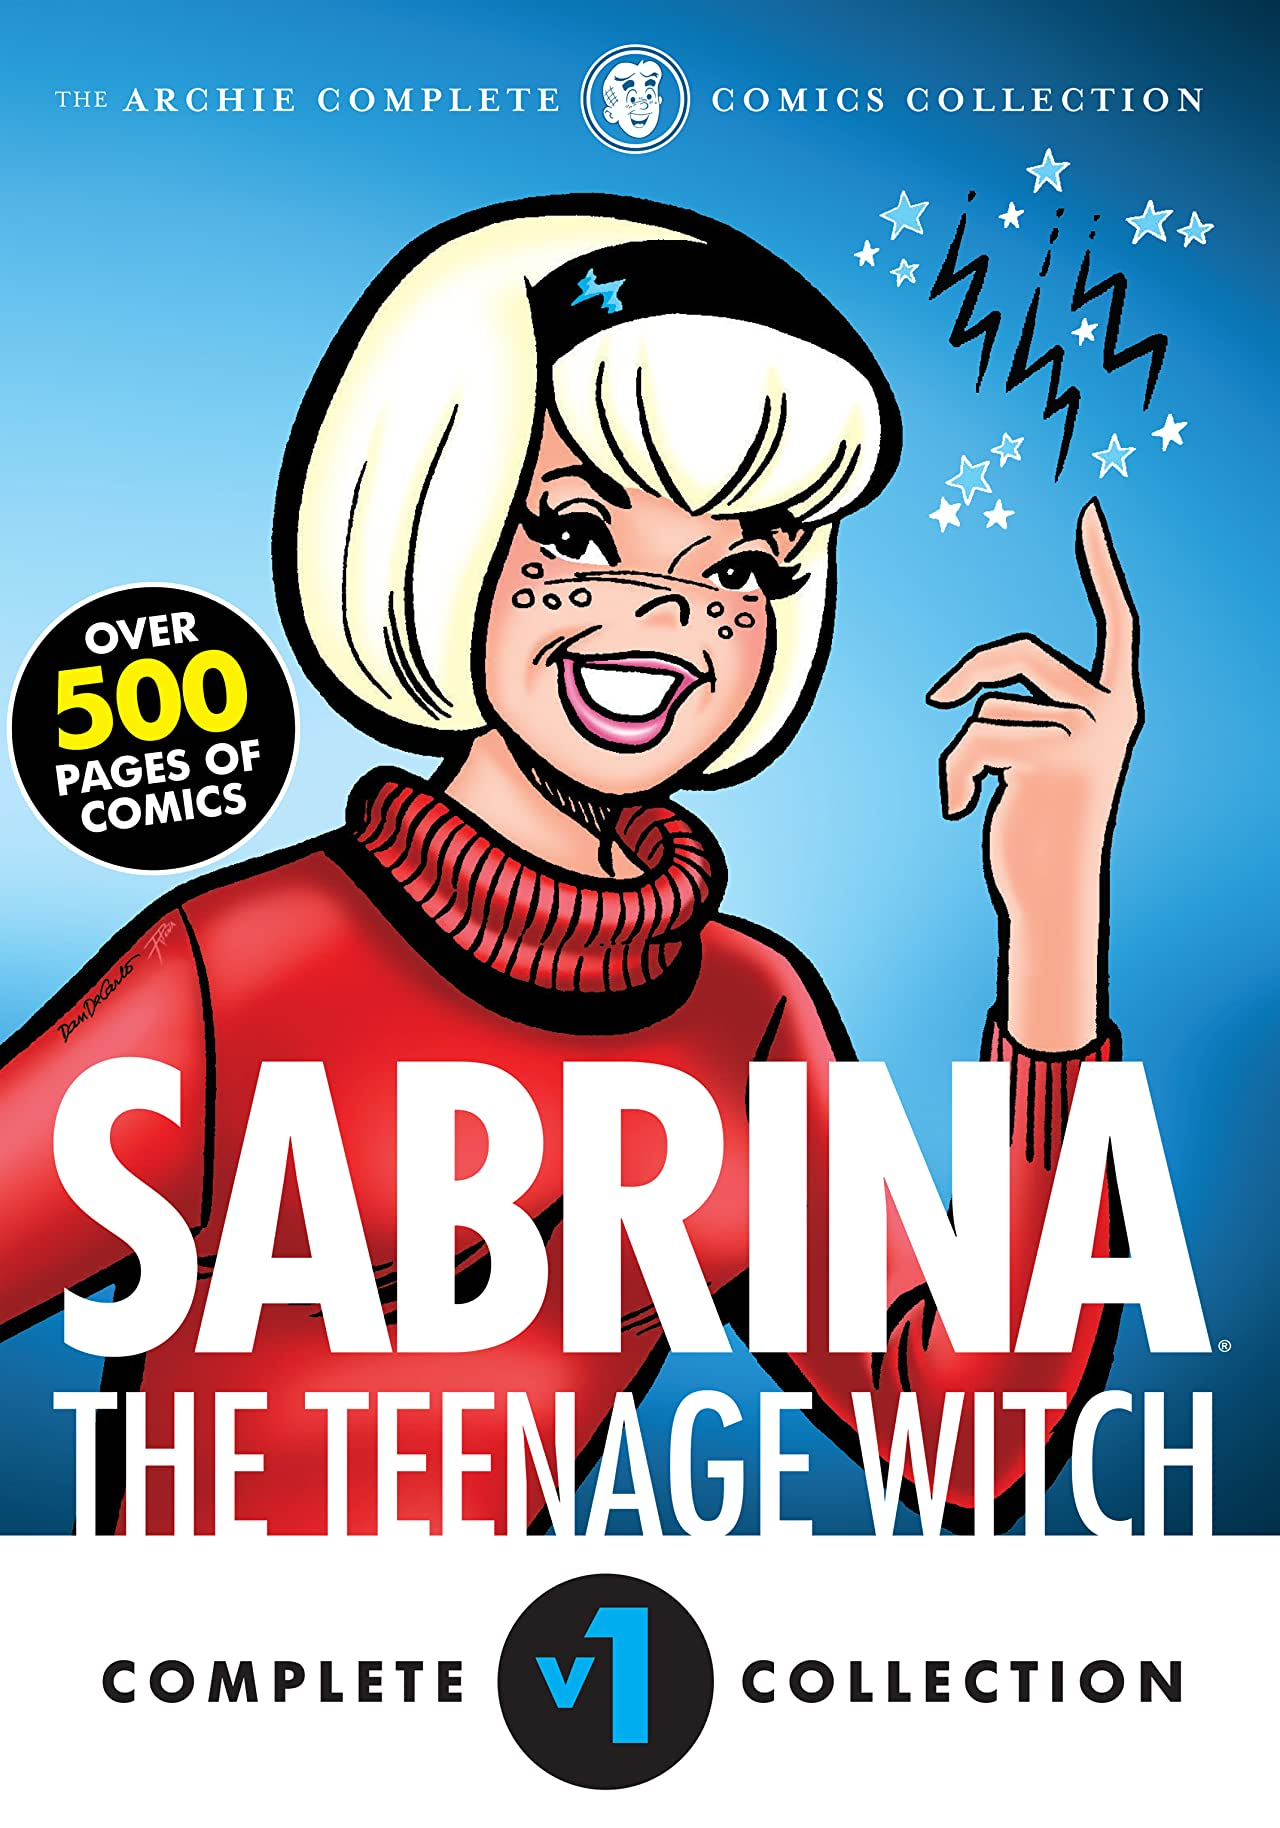 The Complete Sabrina The Teenage Witch 1962-1971